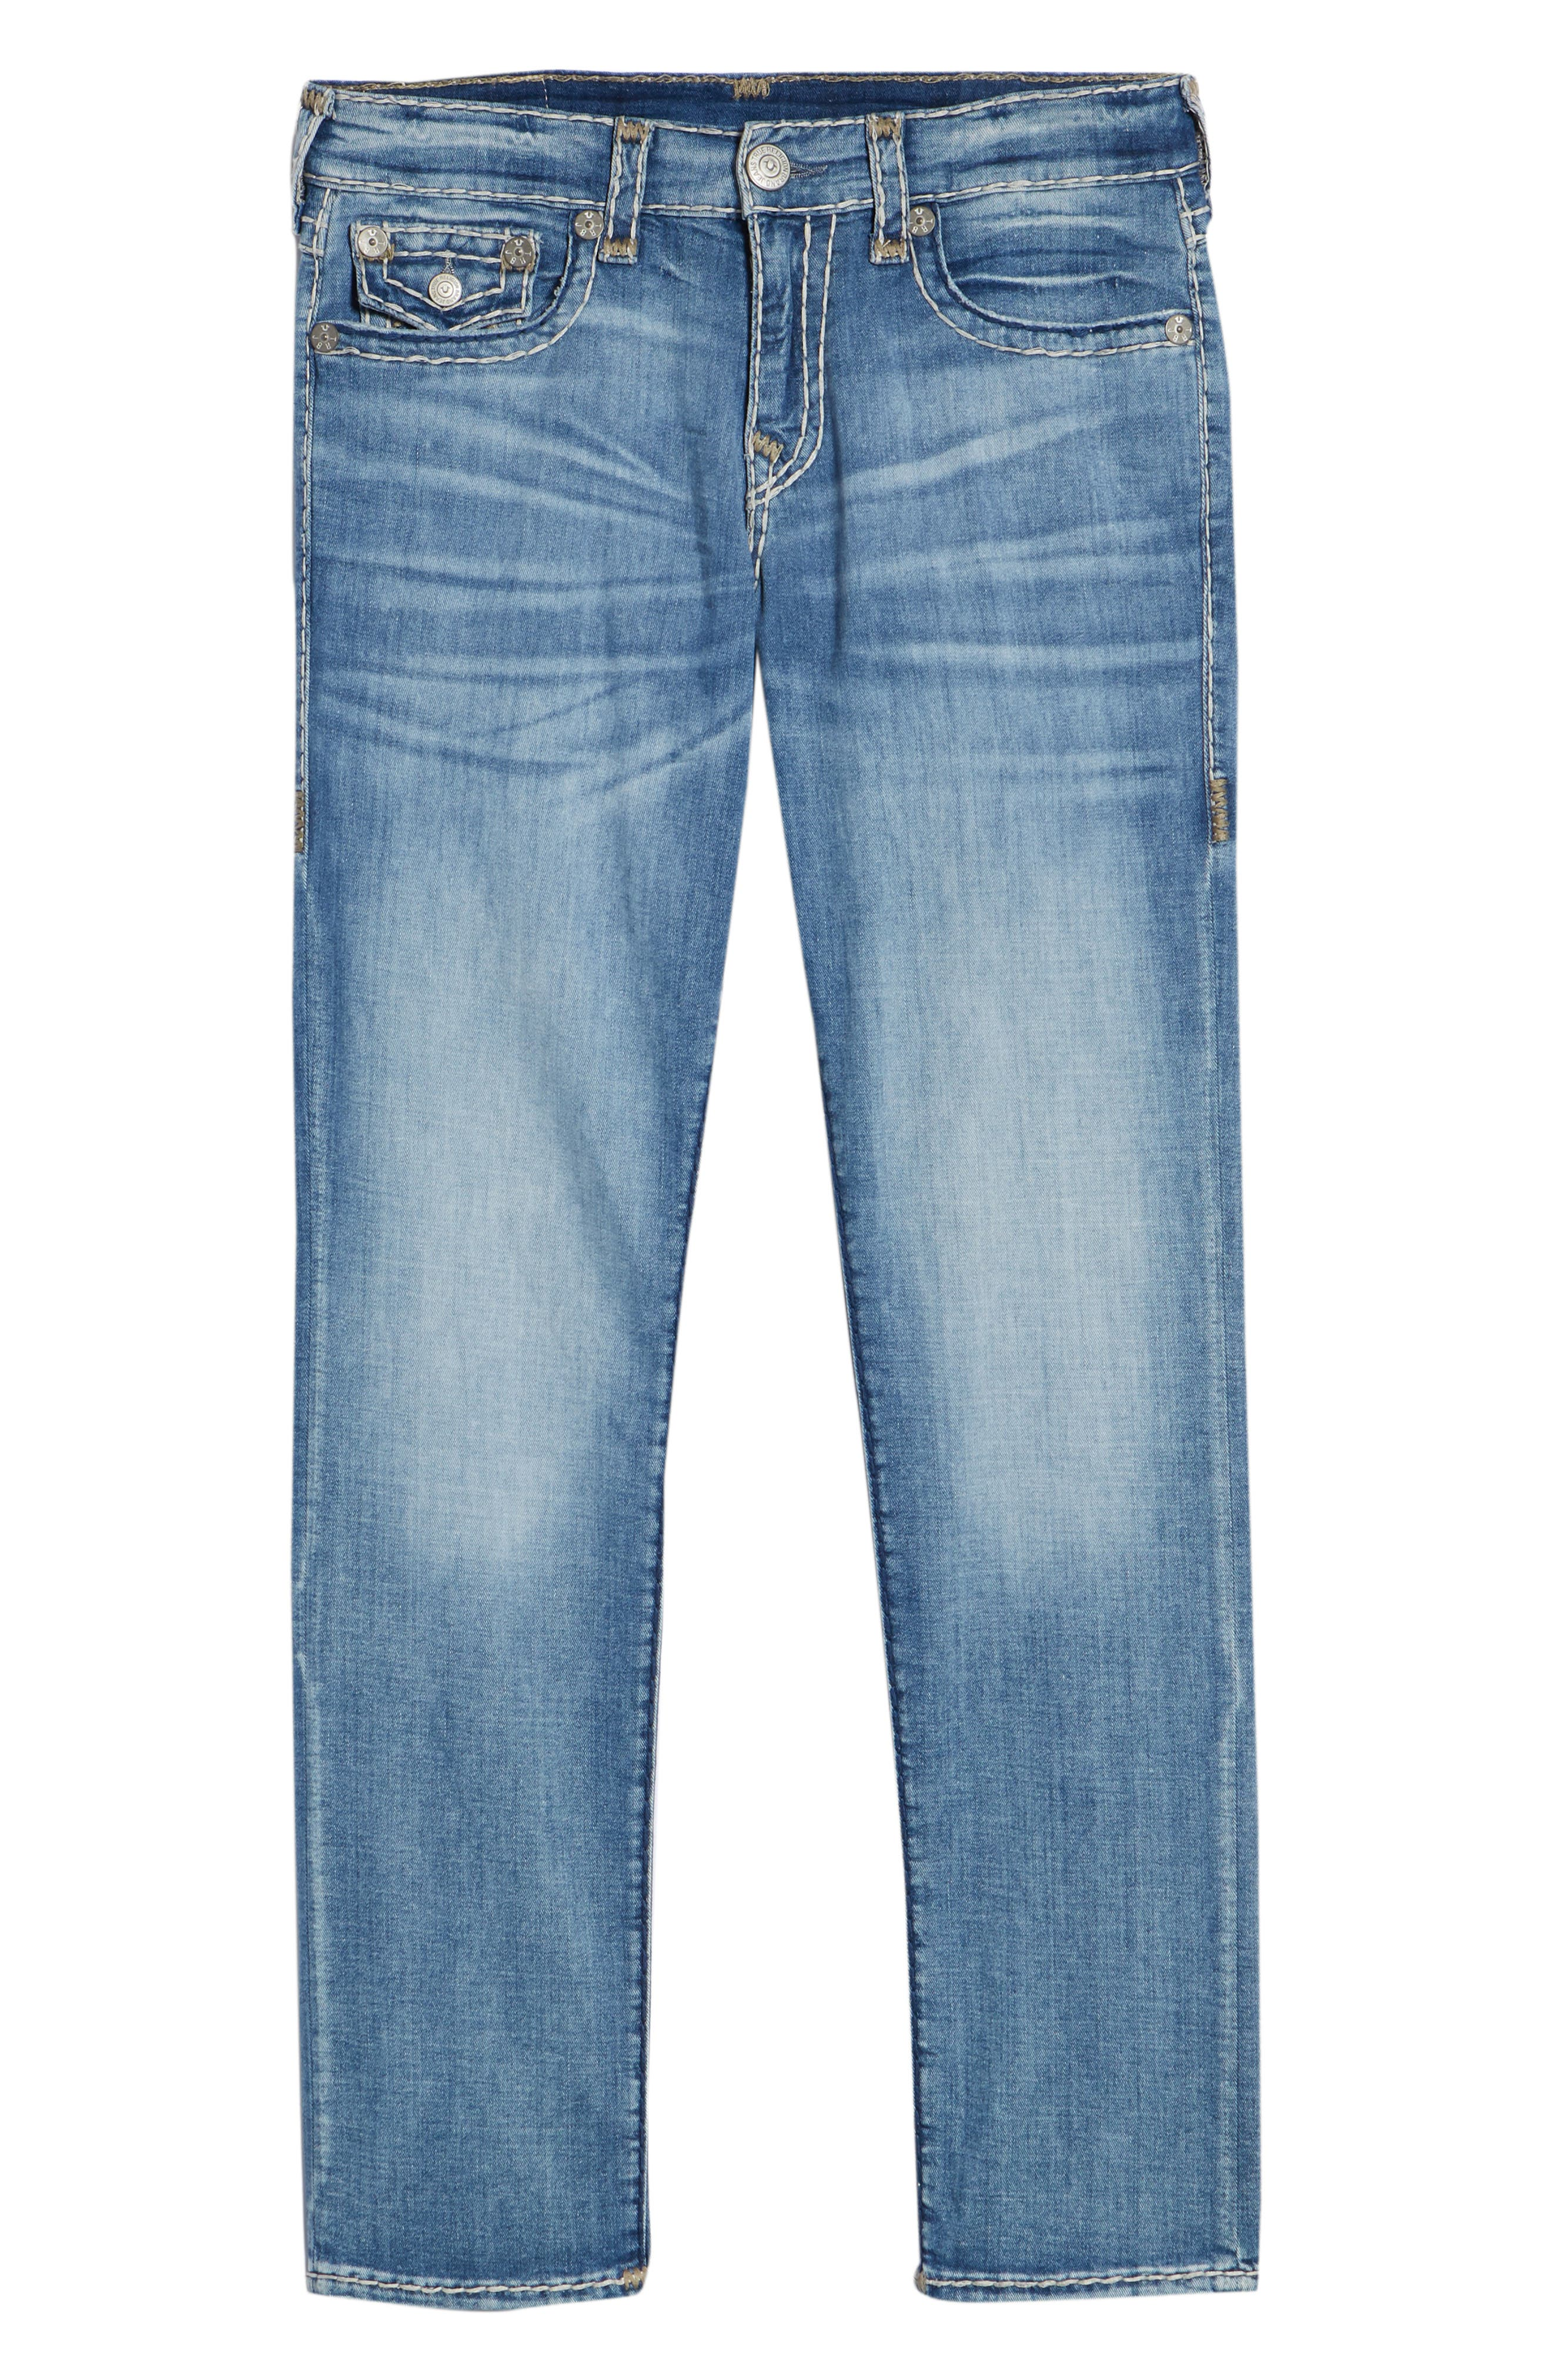 Geno Straight Leg Jeans,                             Alternate thumbnail 6, color,                             401